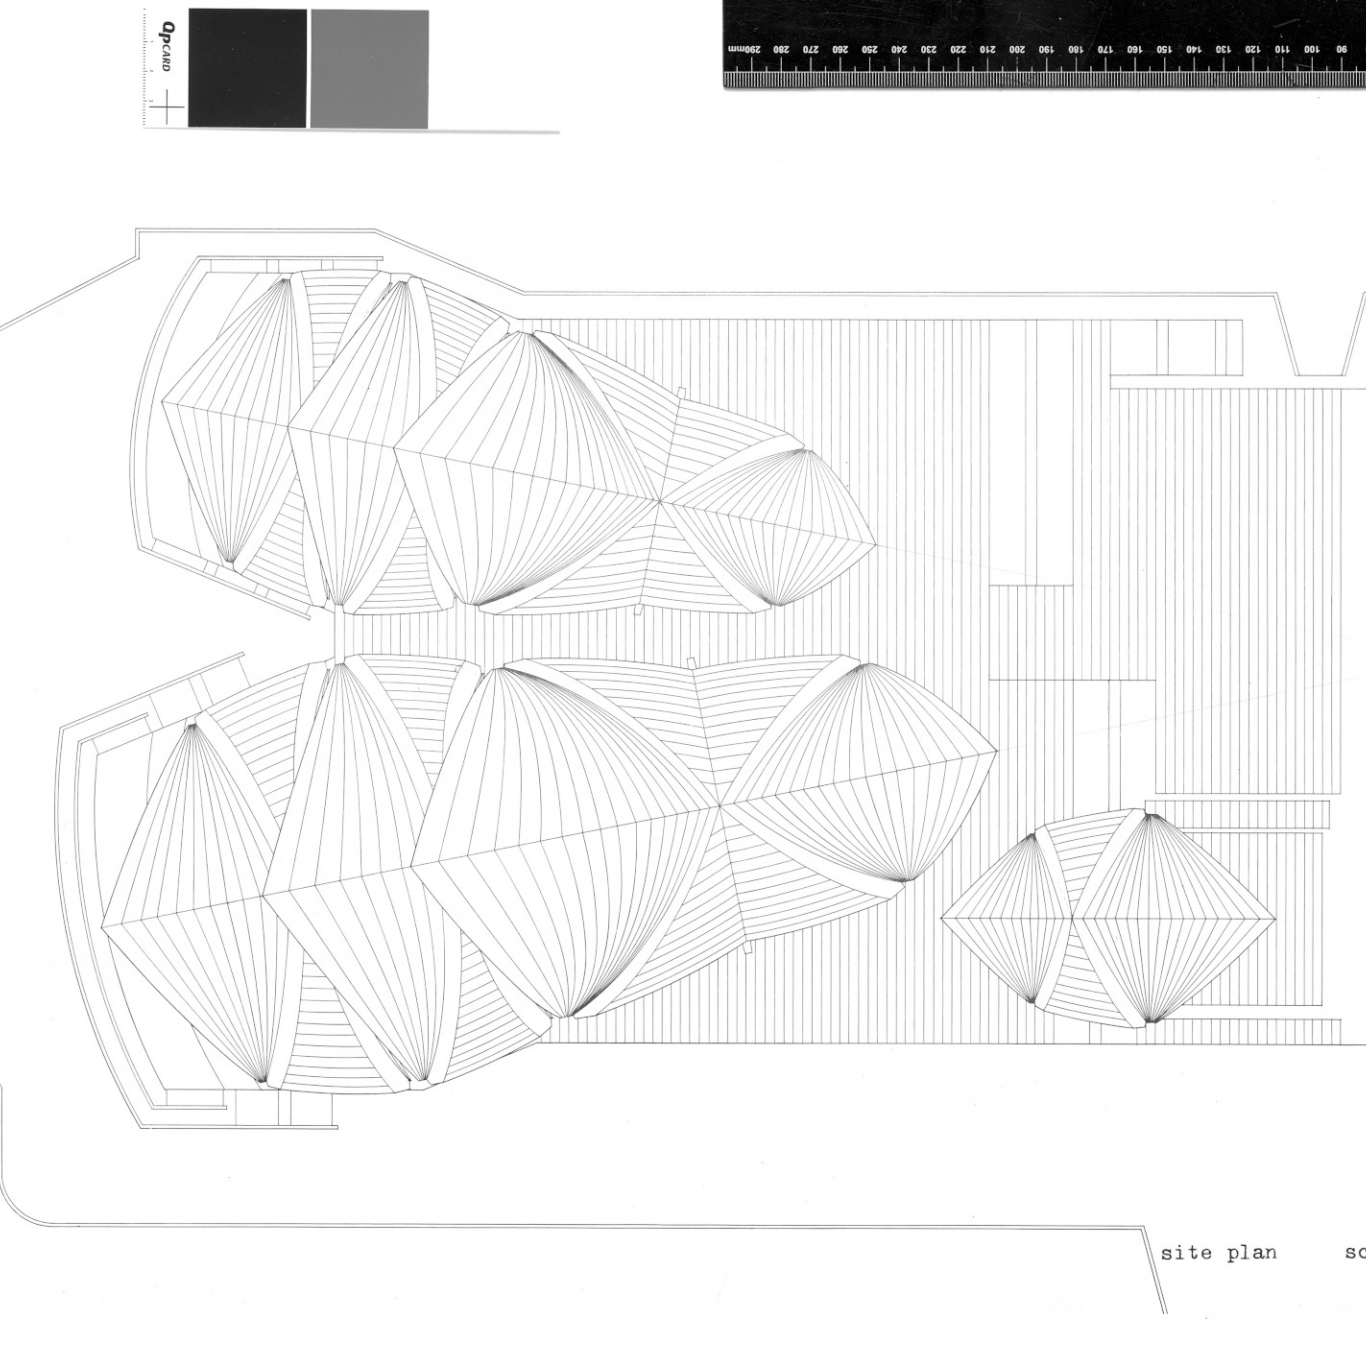 Plan of building from above, with scale shown.